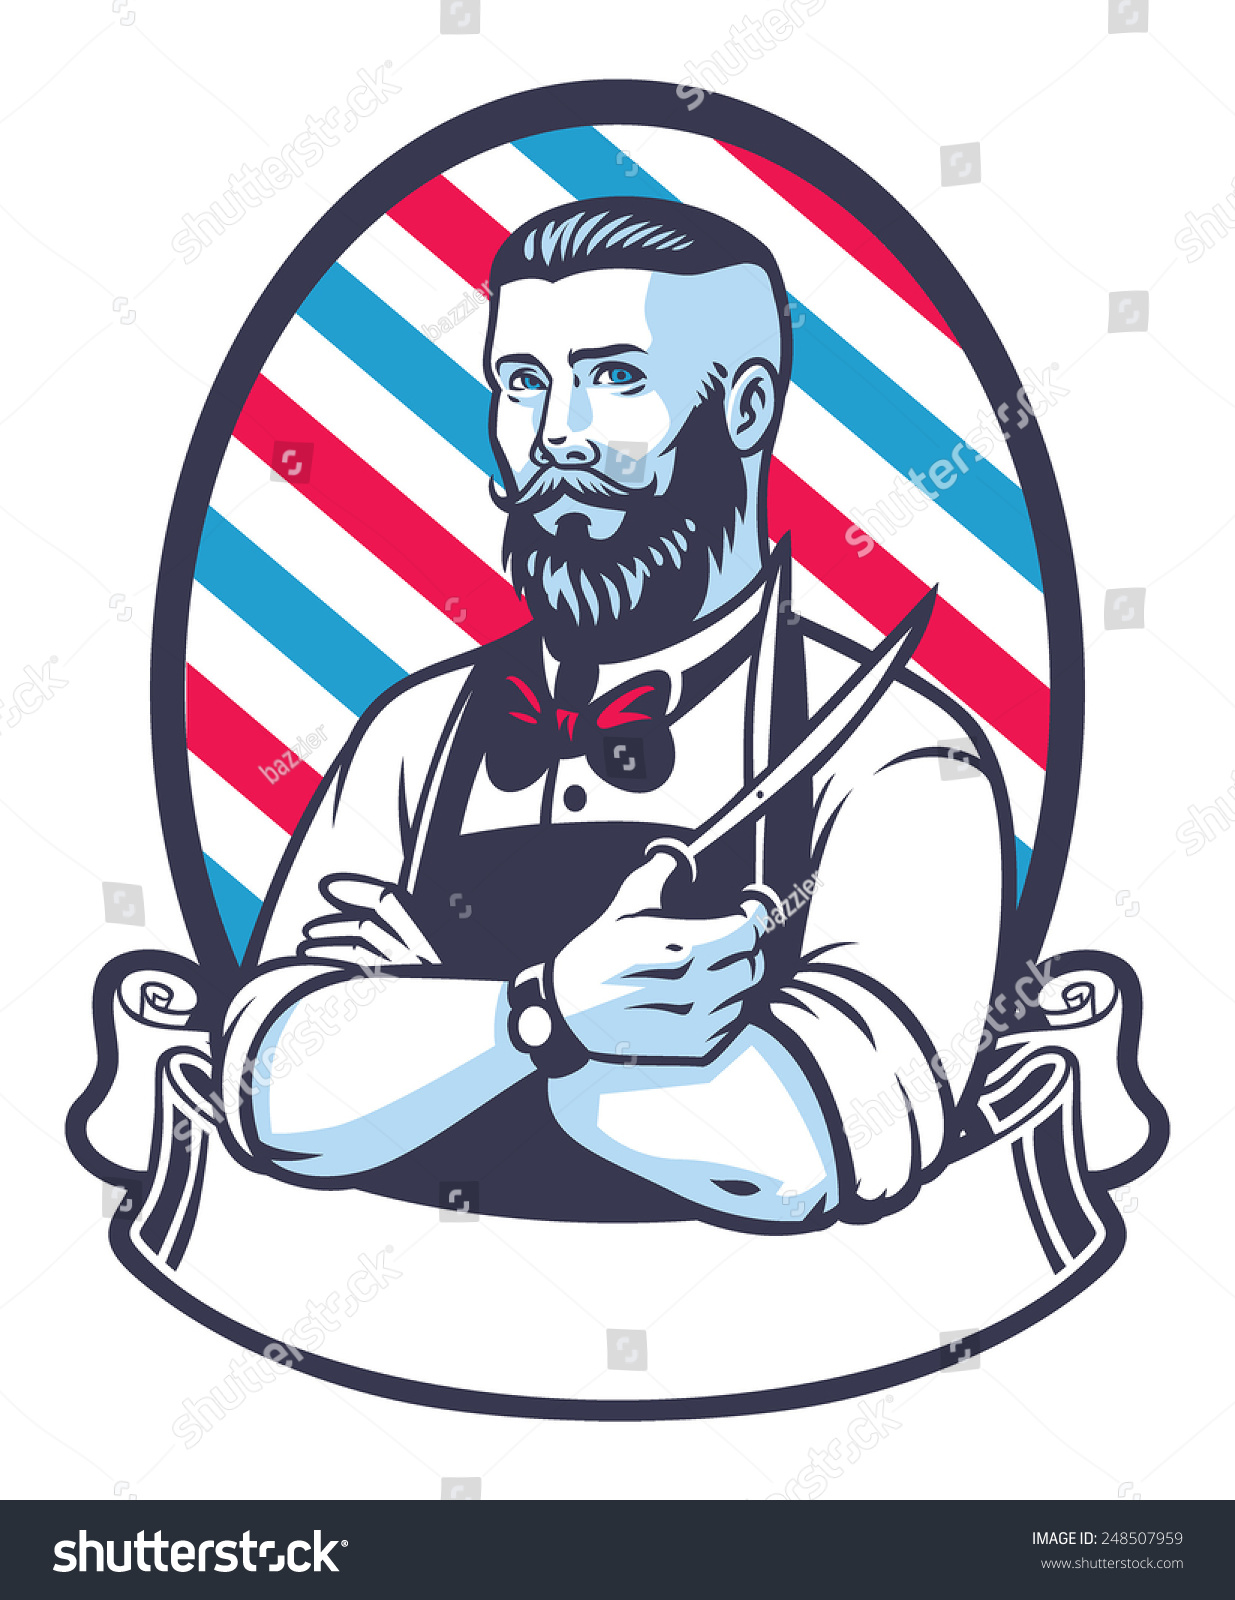 Barber Vector : Retro Illustration Of Barber Man - 248507959 : Shutterstock